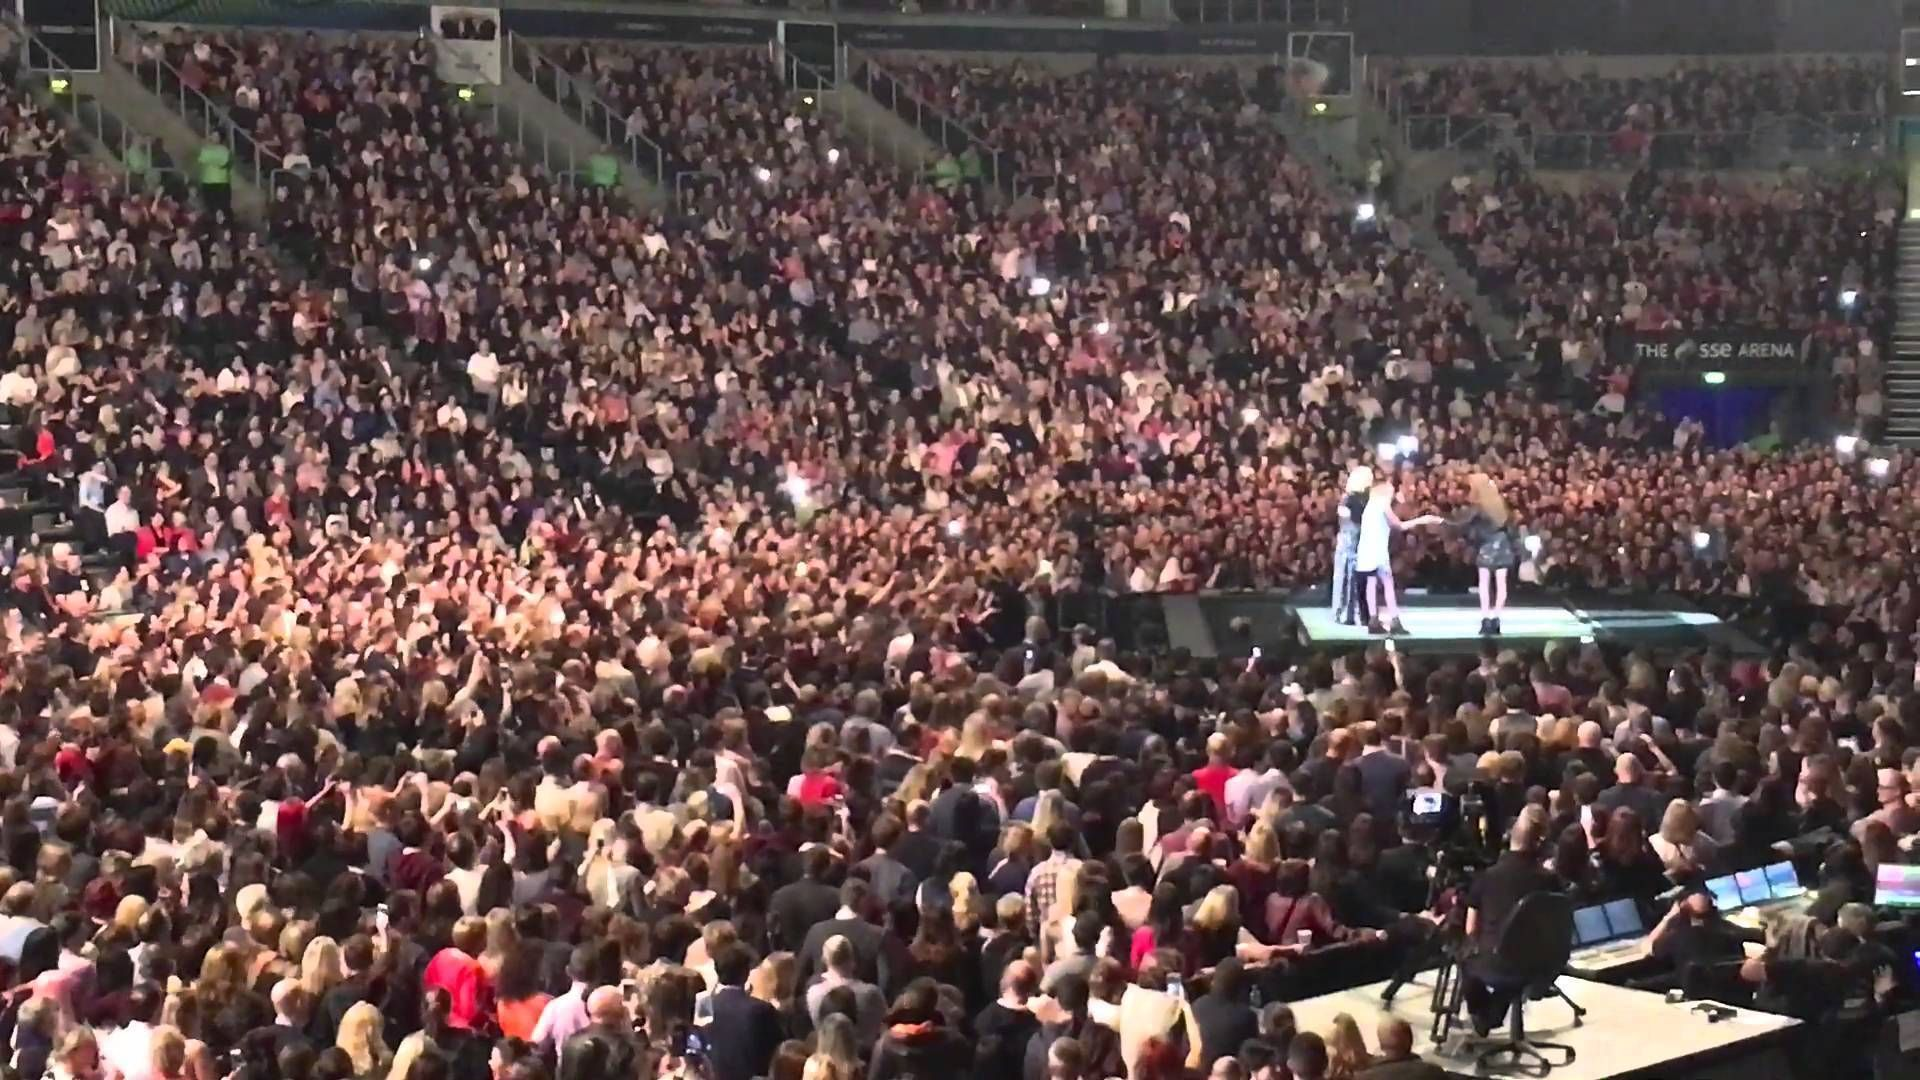 Adele Helped A Woman Propose To Her BF In Front Of 11,000 People. - http://www.lifebuzz.com/adele-help/